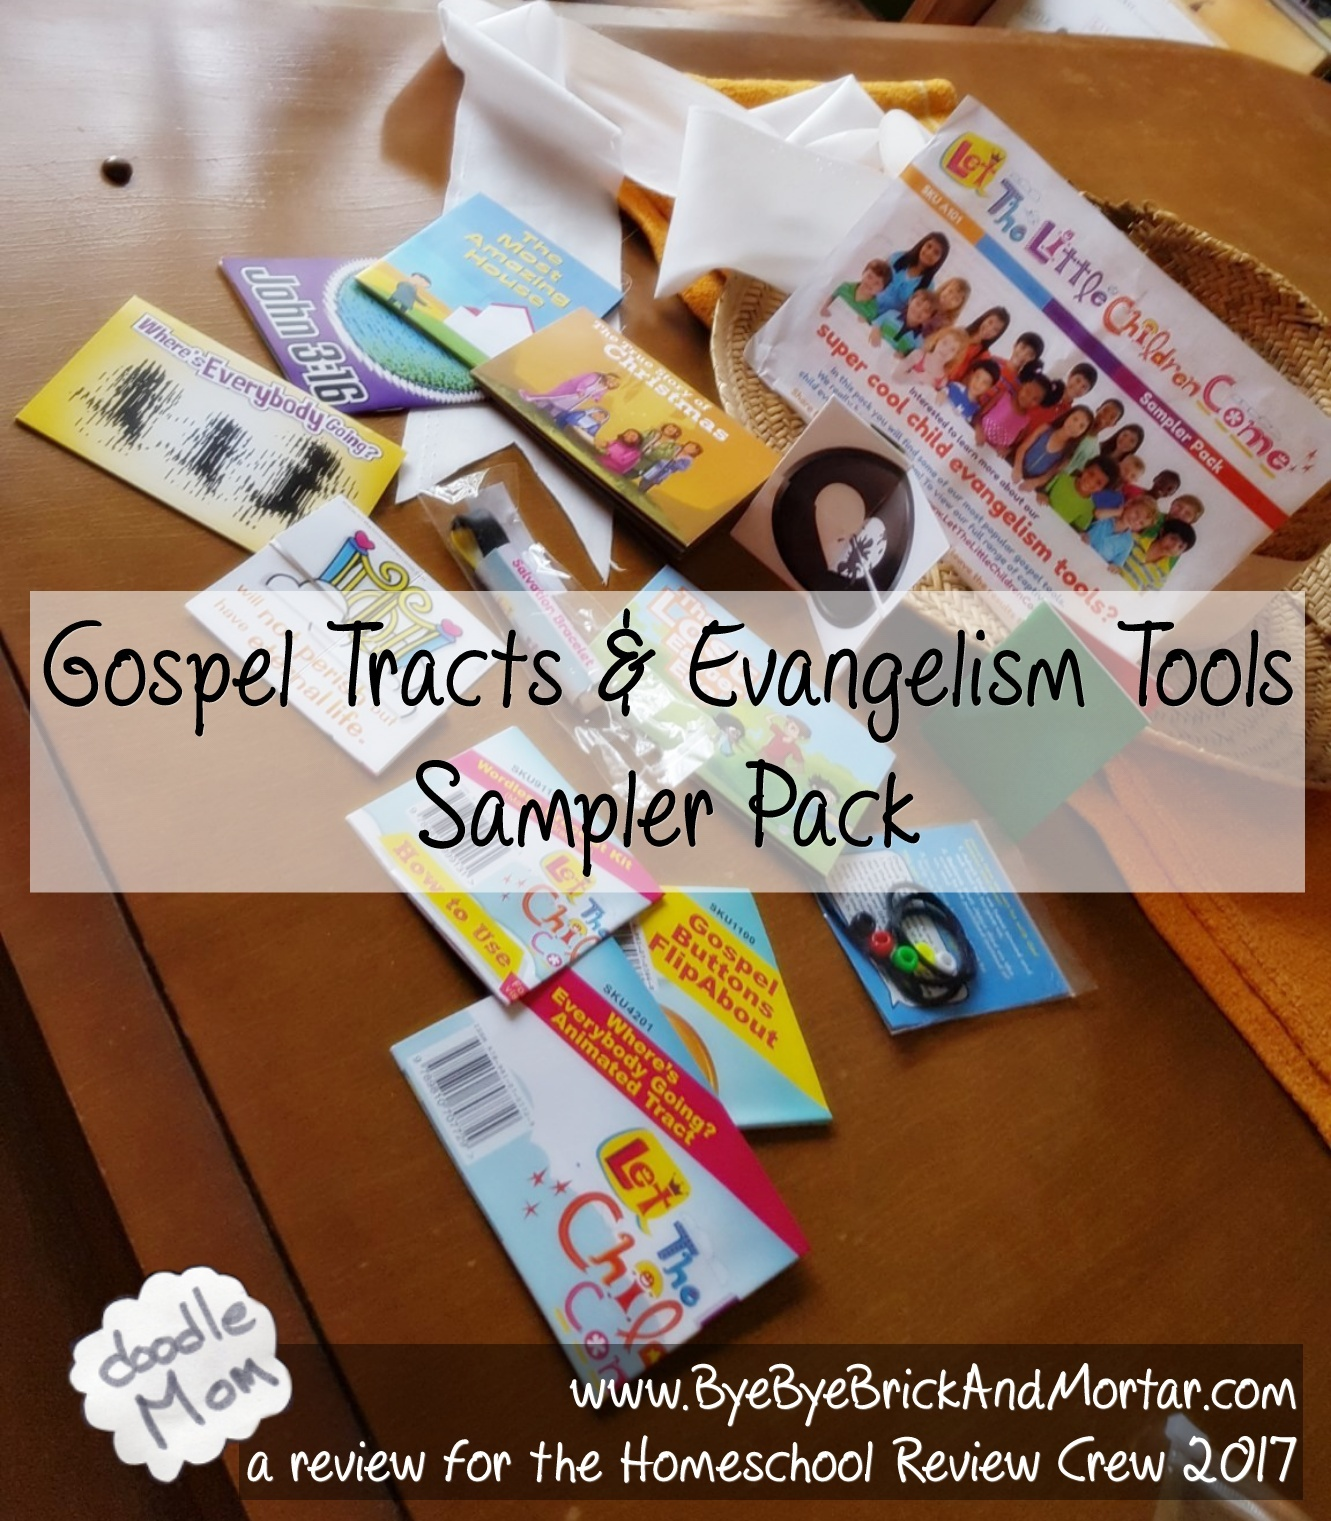 Gospel Tracts and Evangelism Tools Sampler Pack 2